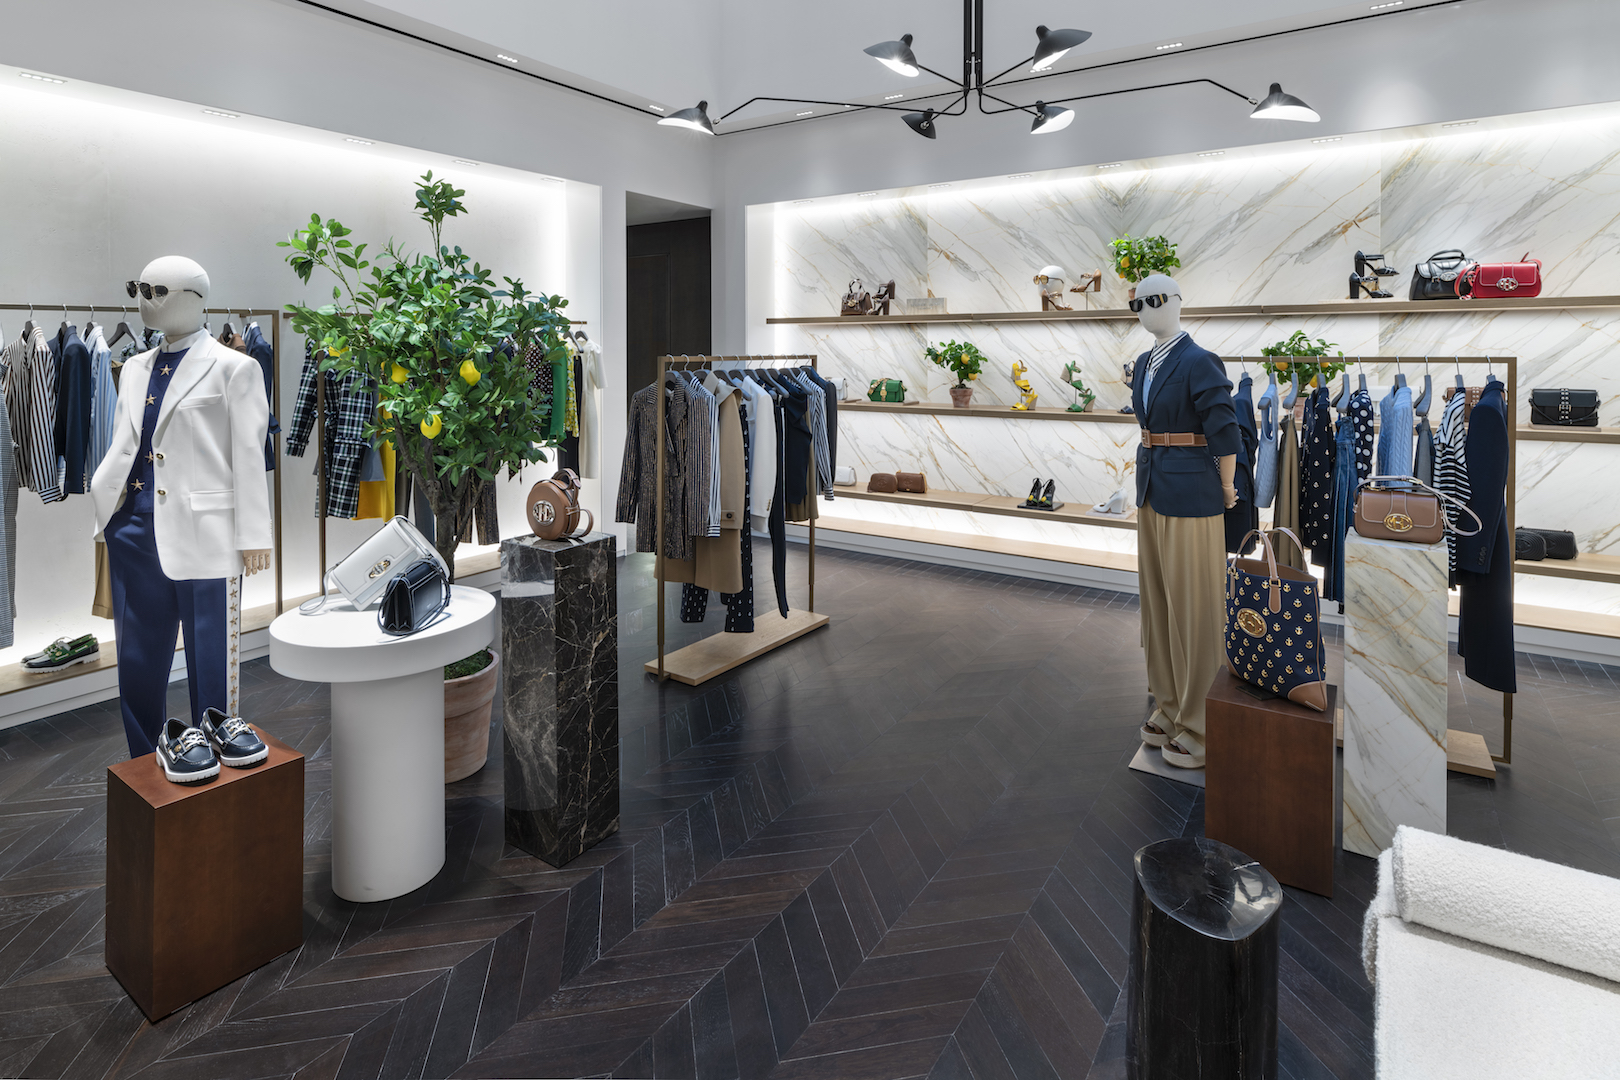 Michael Kors opens newly renovated store in Paris at Rue St Honore